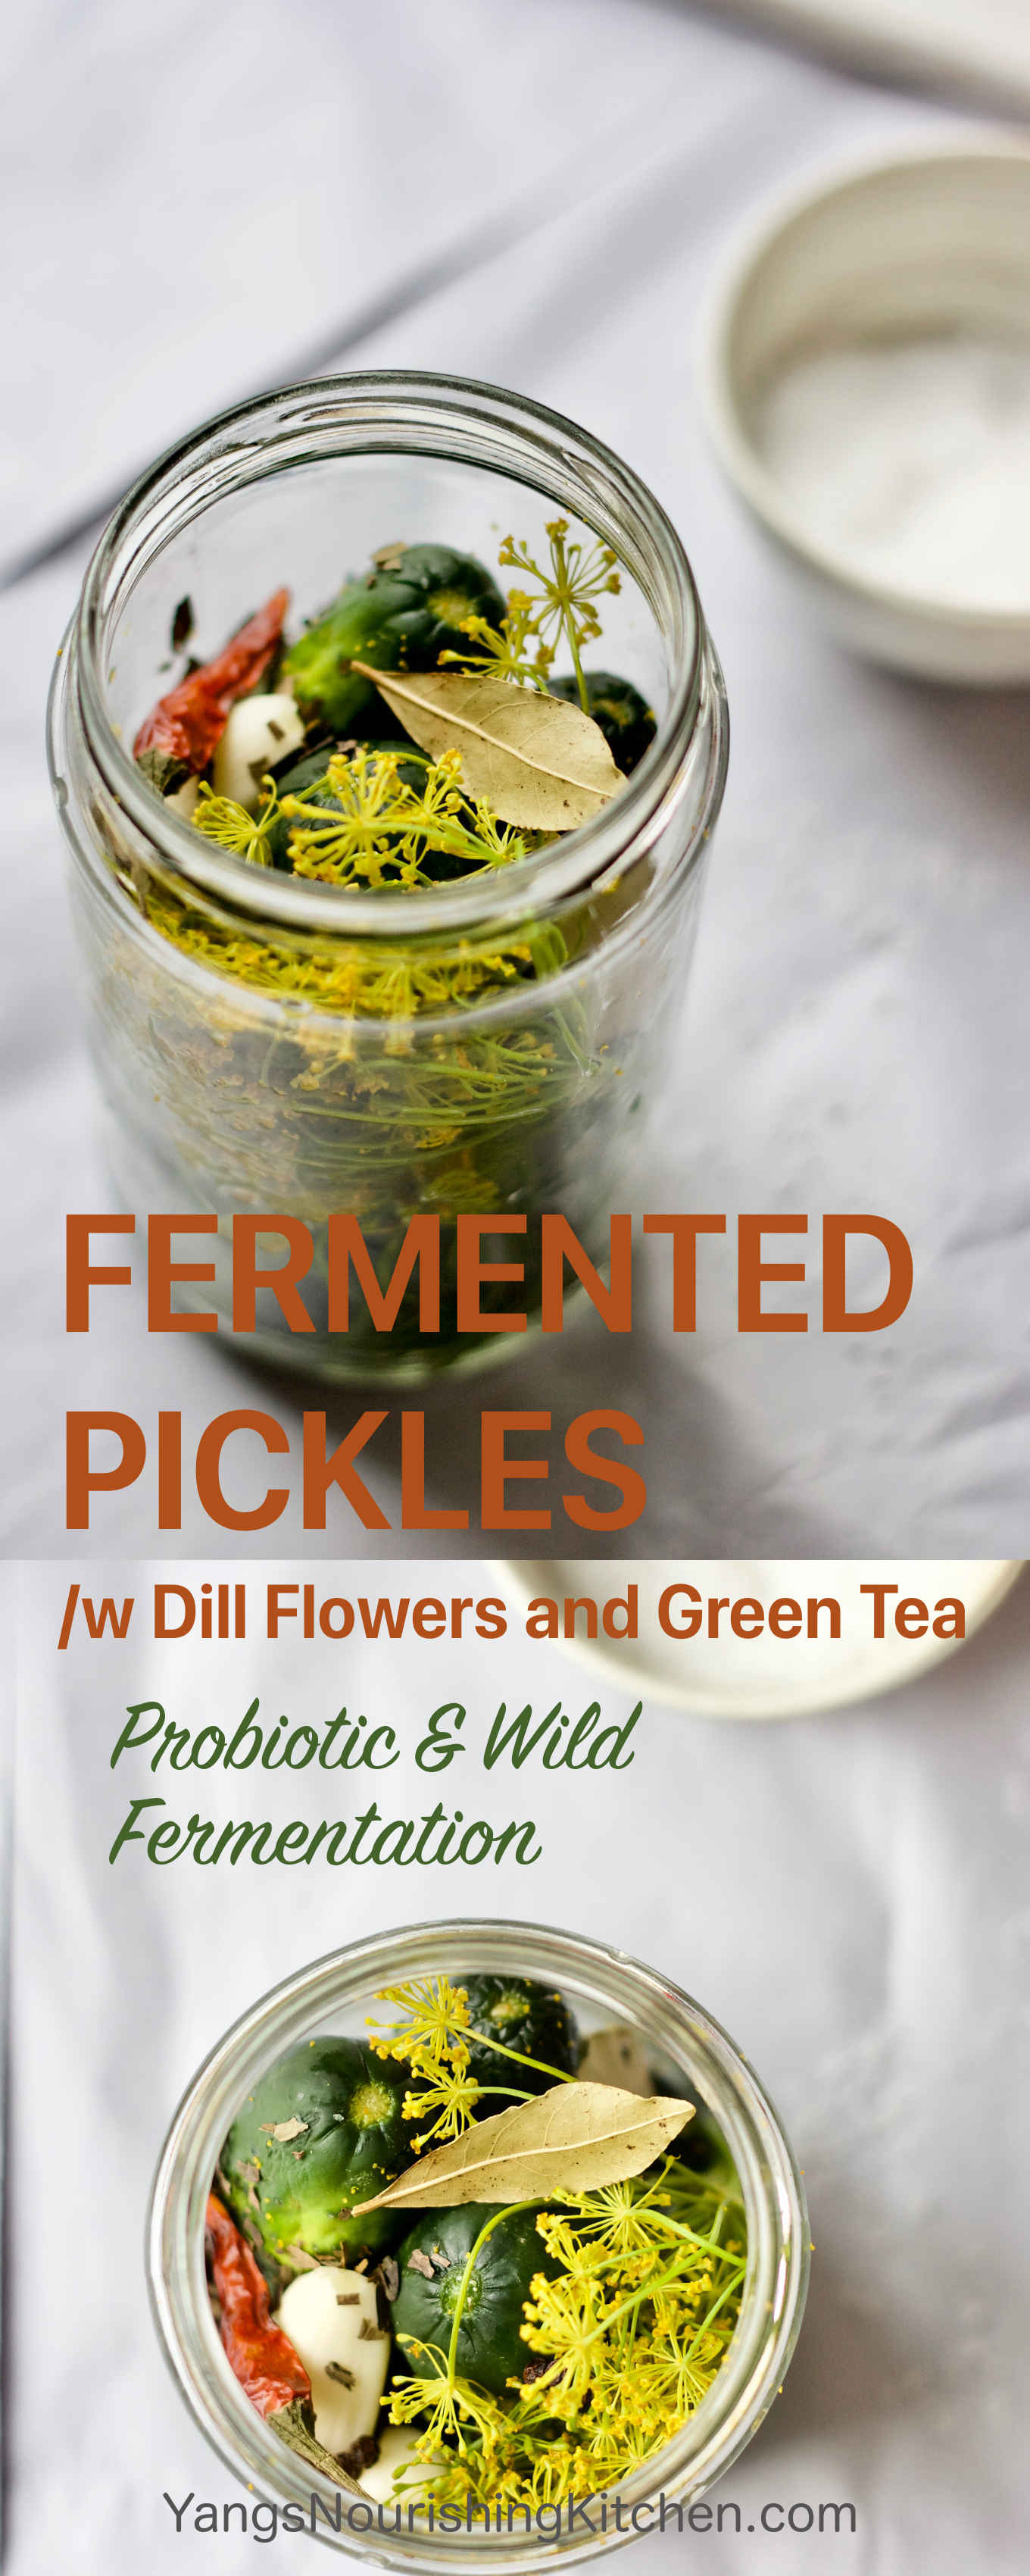 Fermented Pickles /w Green Tea and Dill Flowers